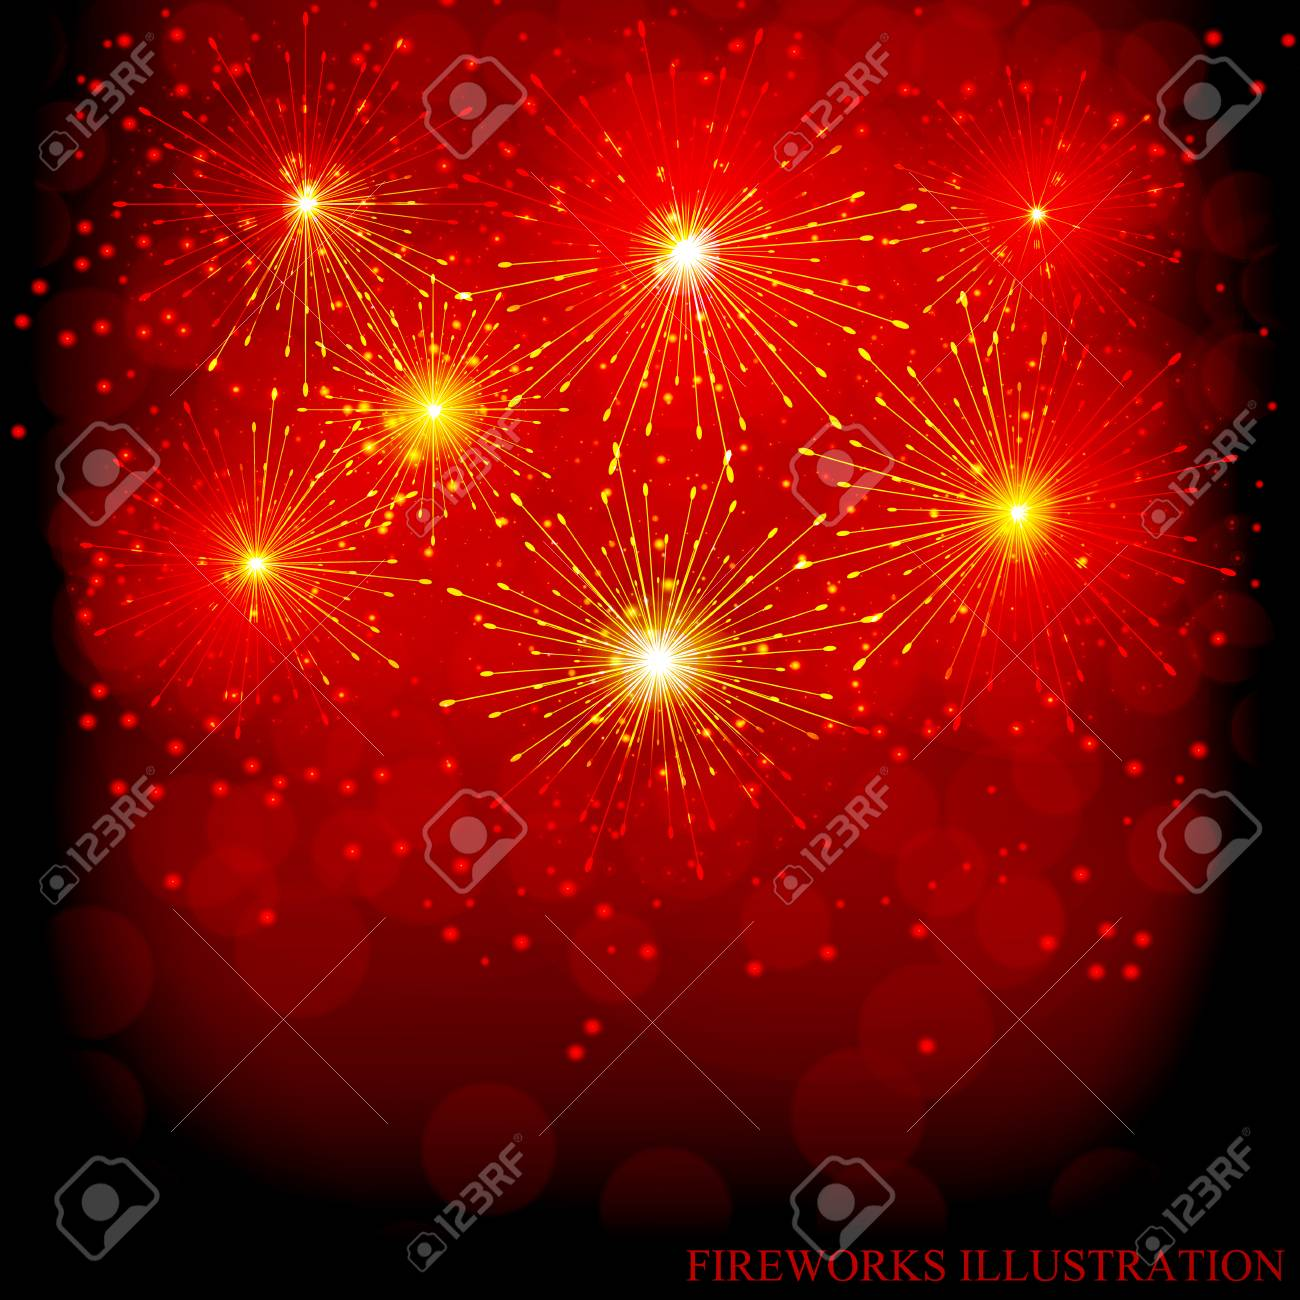 Brightly Colorful Fireworks Red Illustration Of Fireworks Holiday